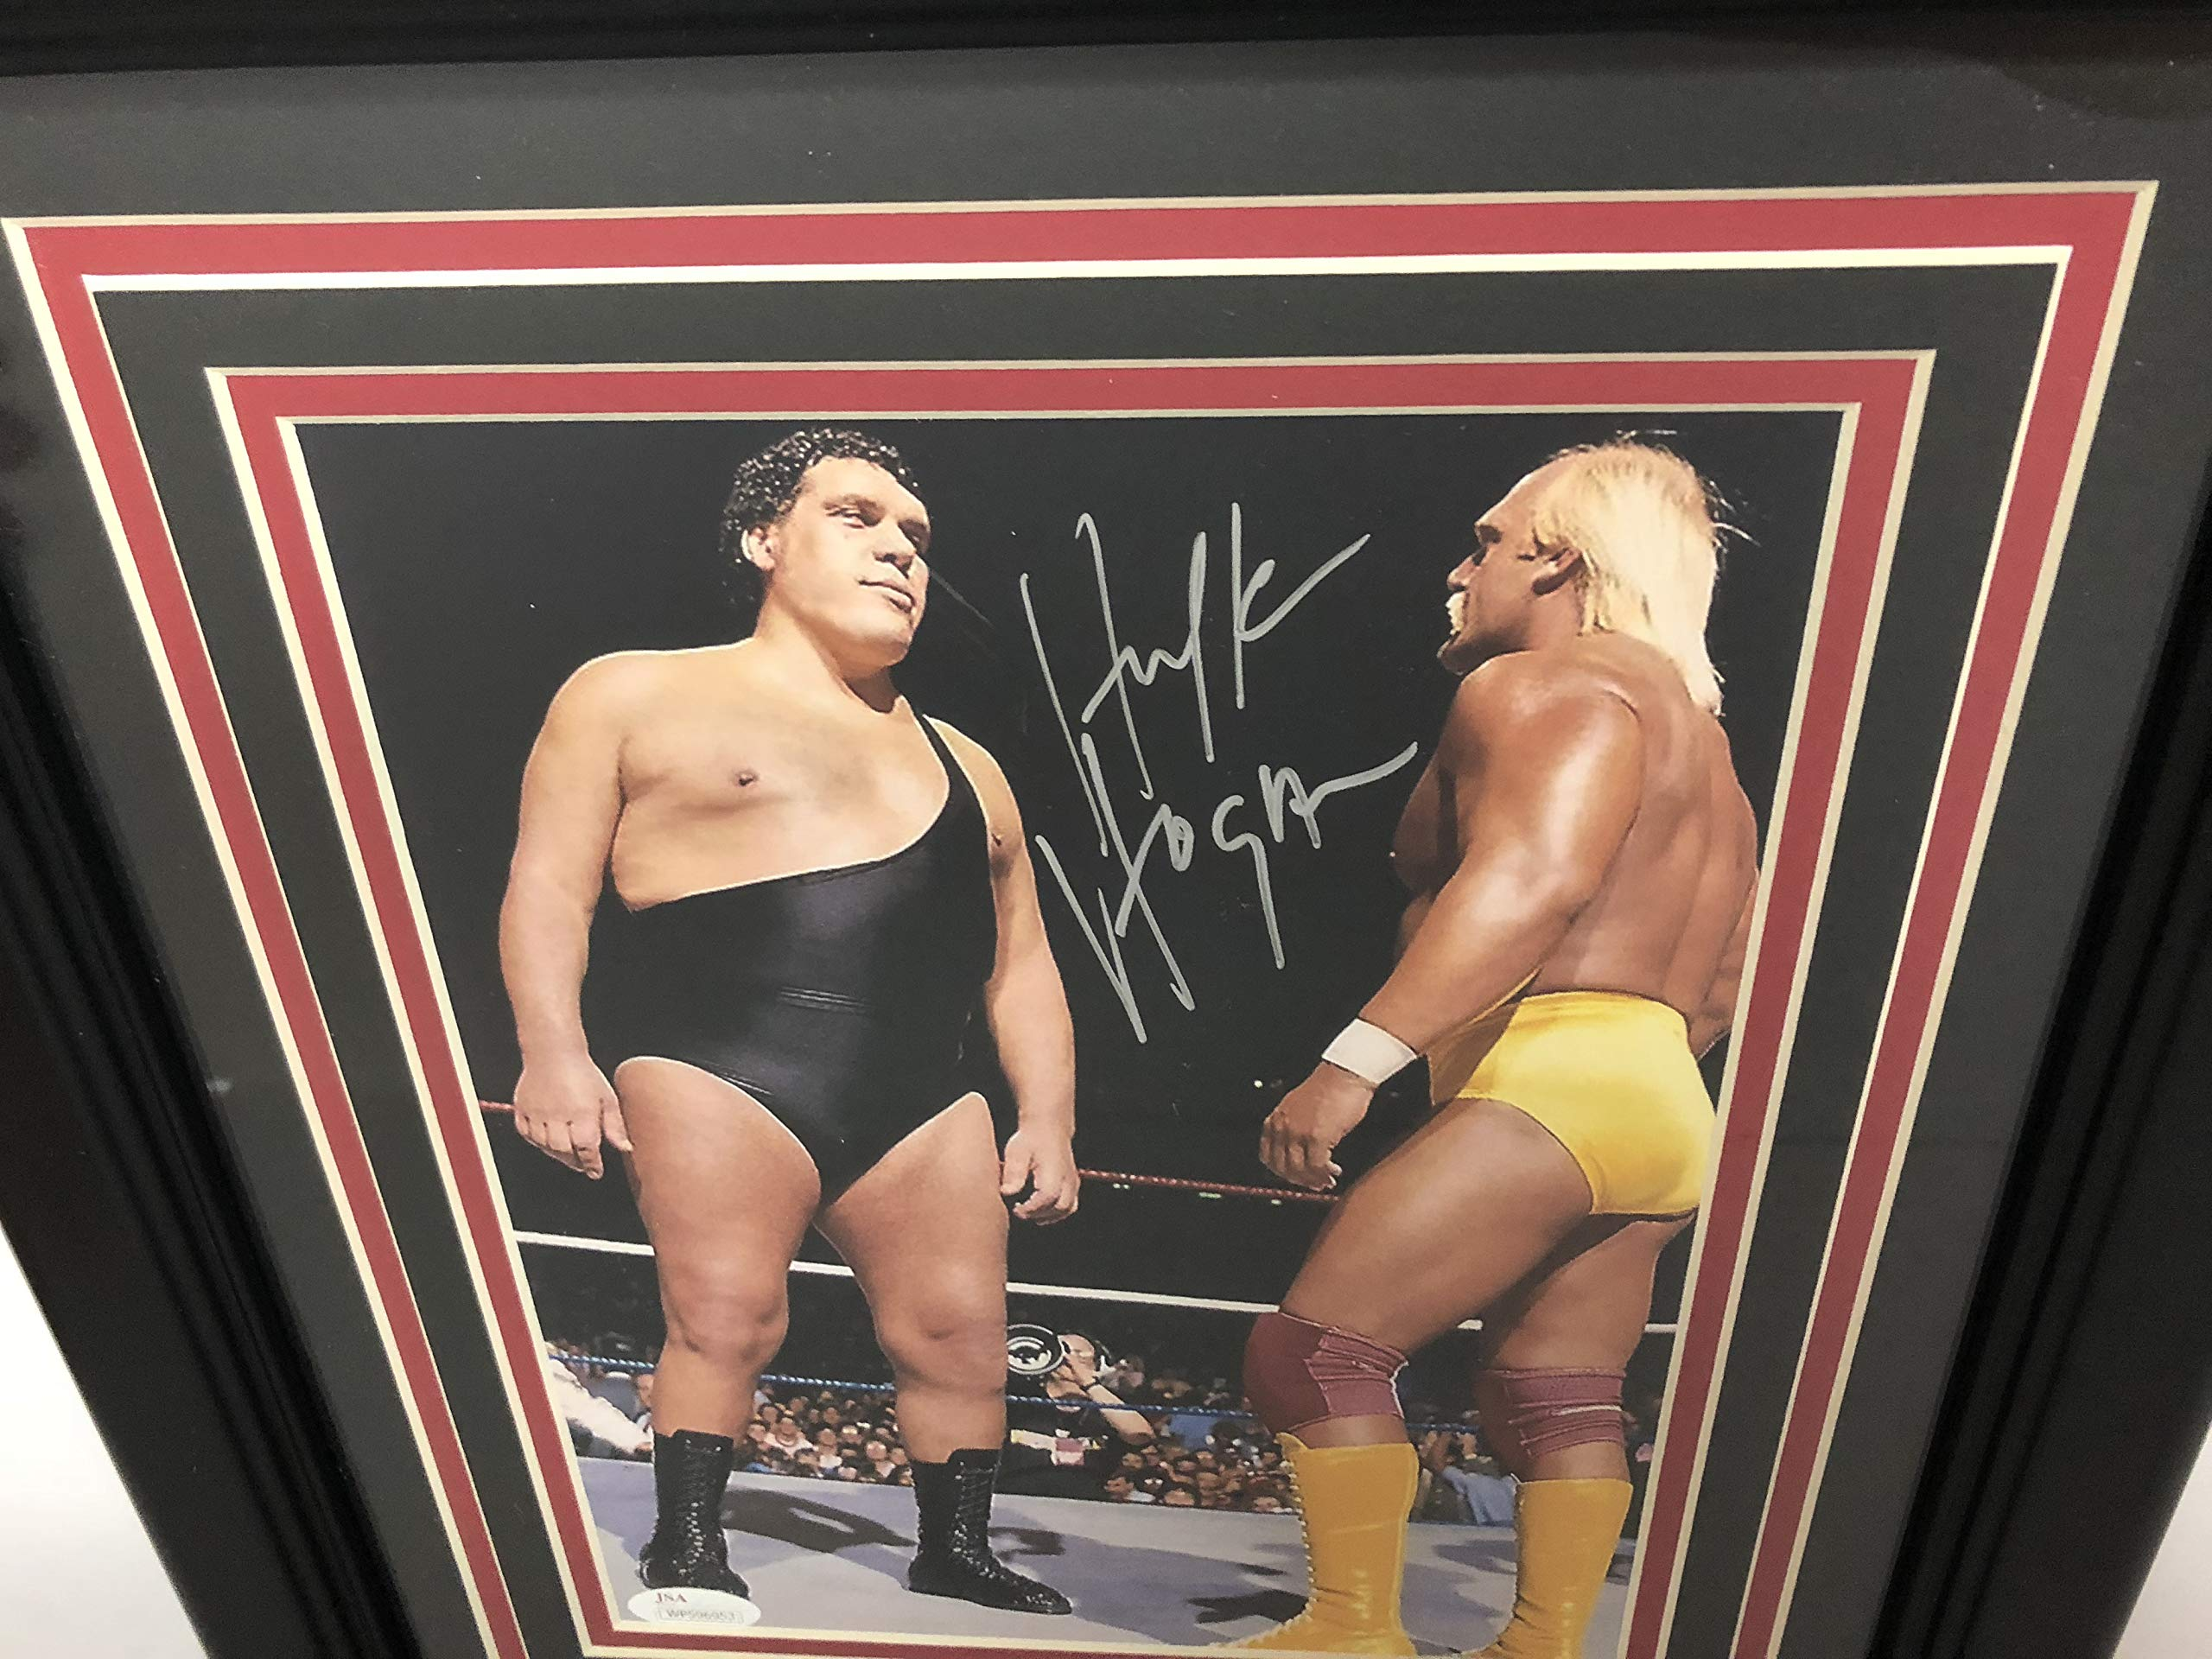 Hulk Hogan WWF Signed Autographed 8 x 10 Framed Photo with Andre the Giant with JSA certification